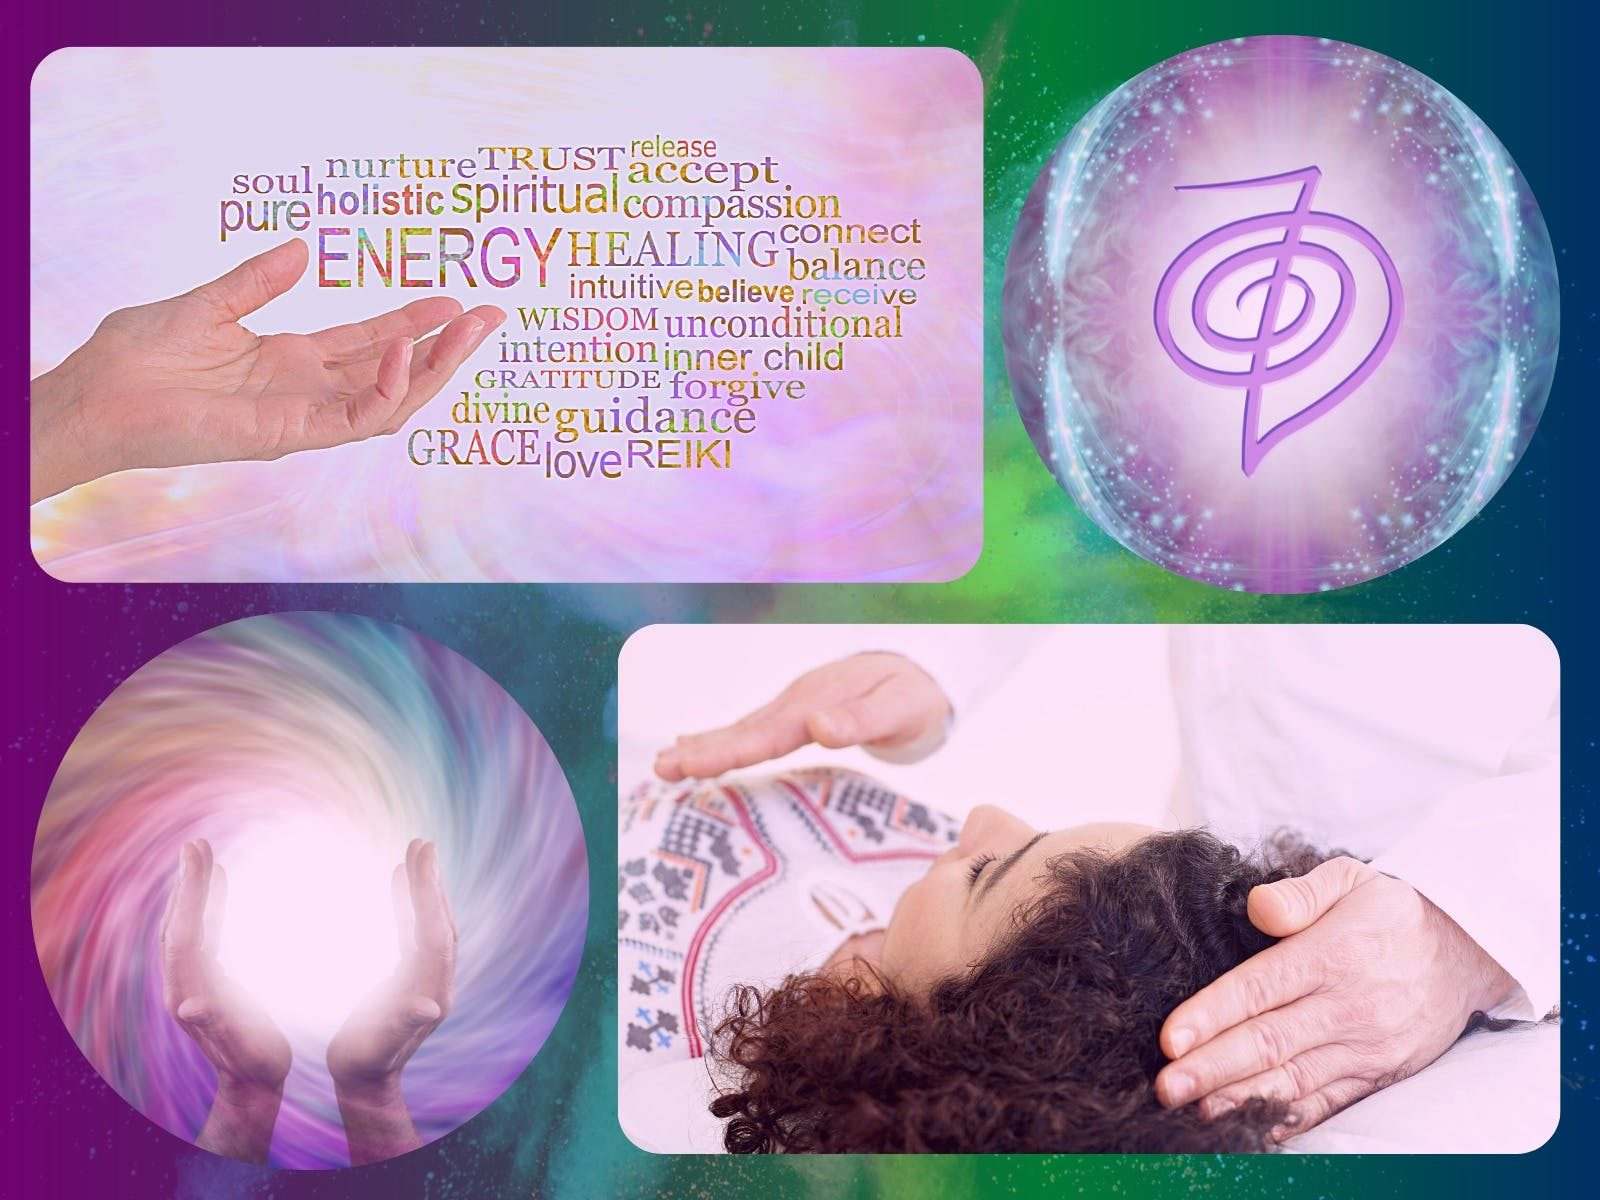 Reiki means Spiritual Lifeforce Energy that empower to heal one's self.